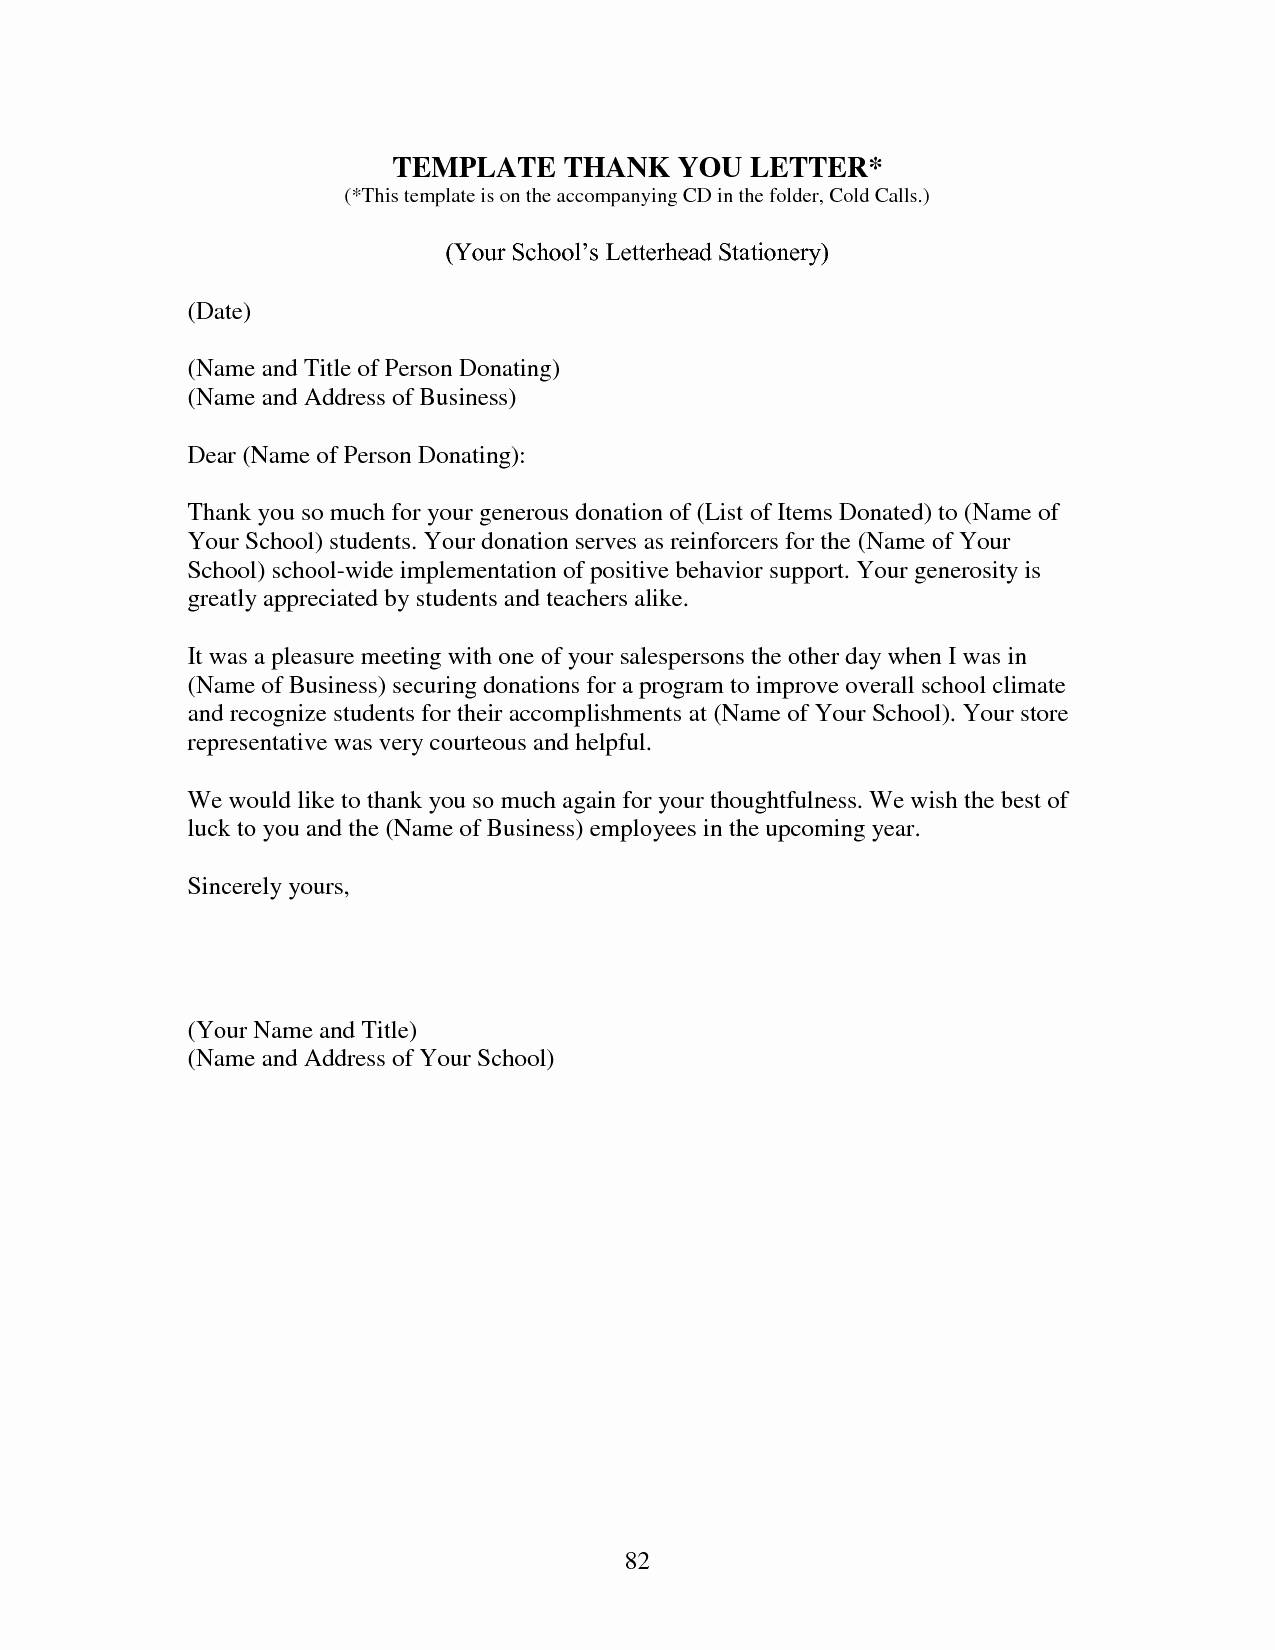 Recruitment Letter Template - Collection Of solutions Resume Cv Cover Letter Desktop Support